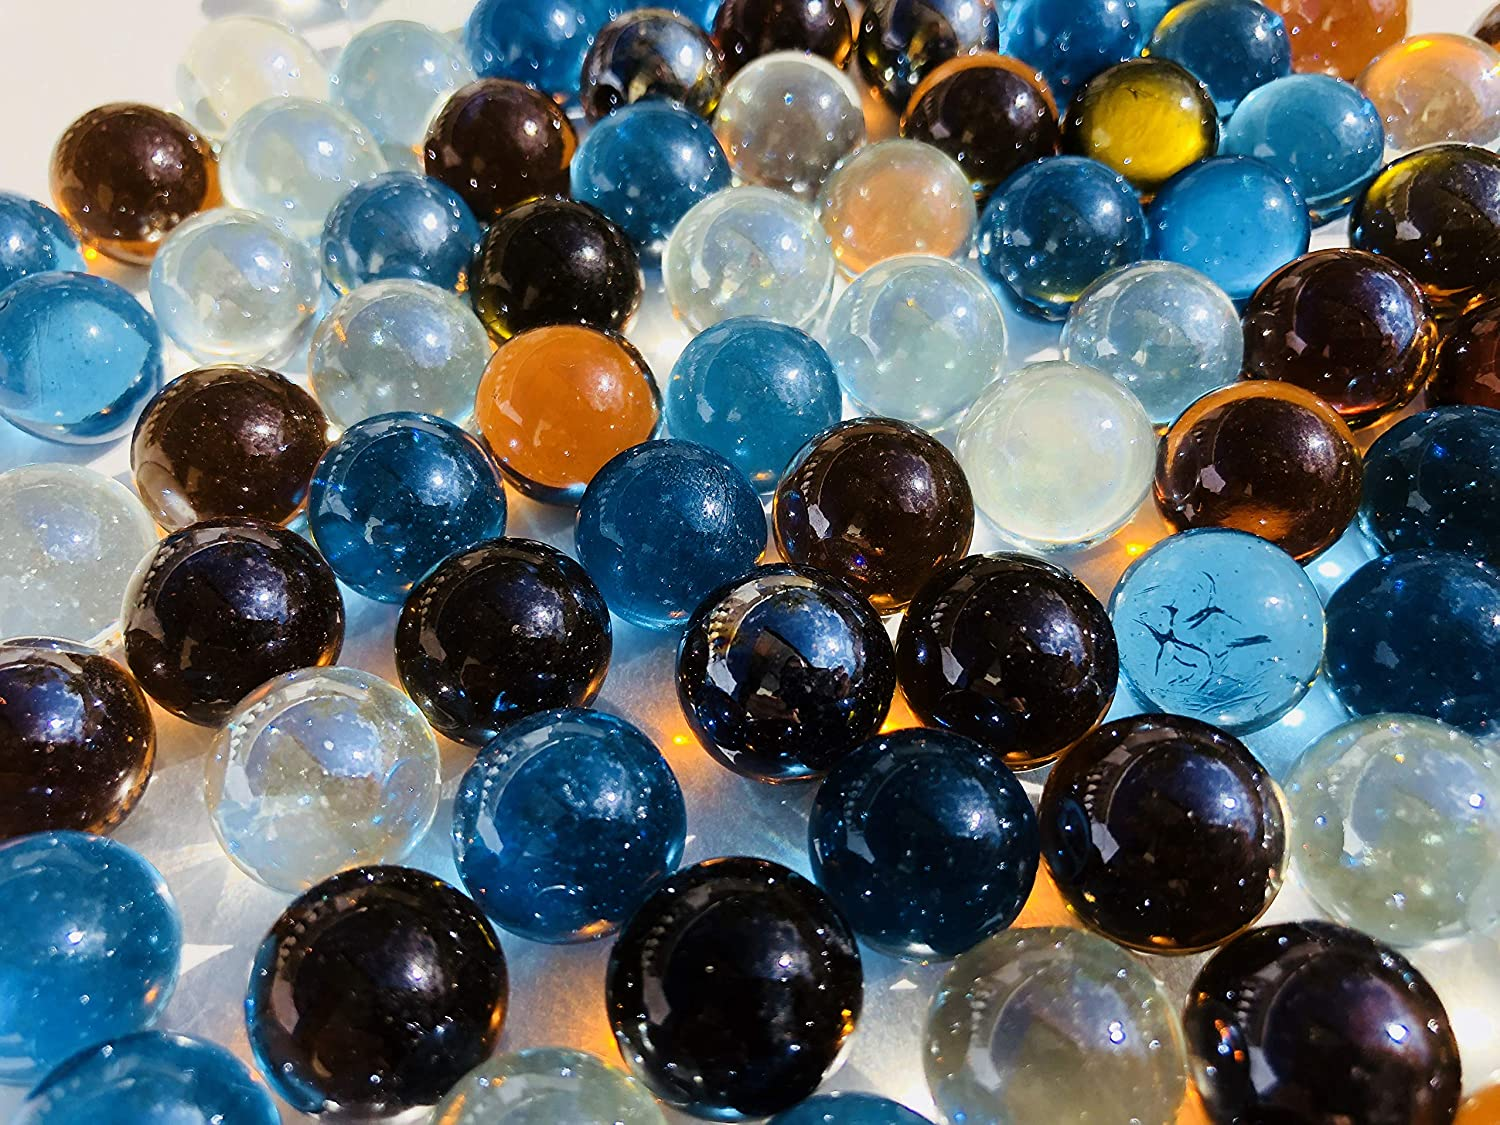 Crystal King Colourful Glass Marbles Marble Decoration Ball N16 Mm